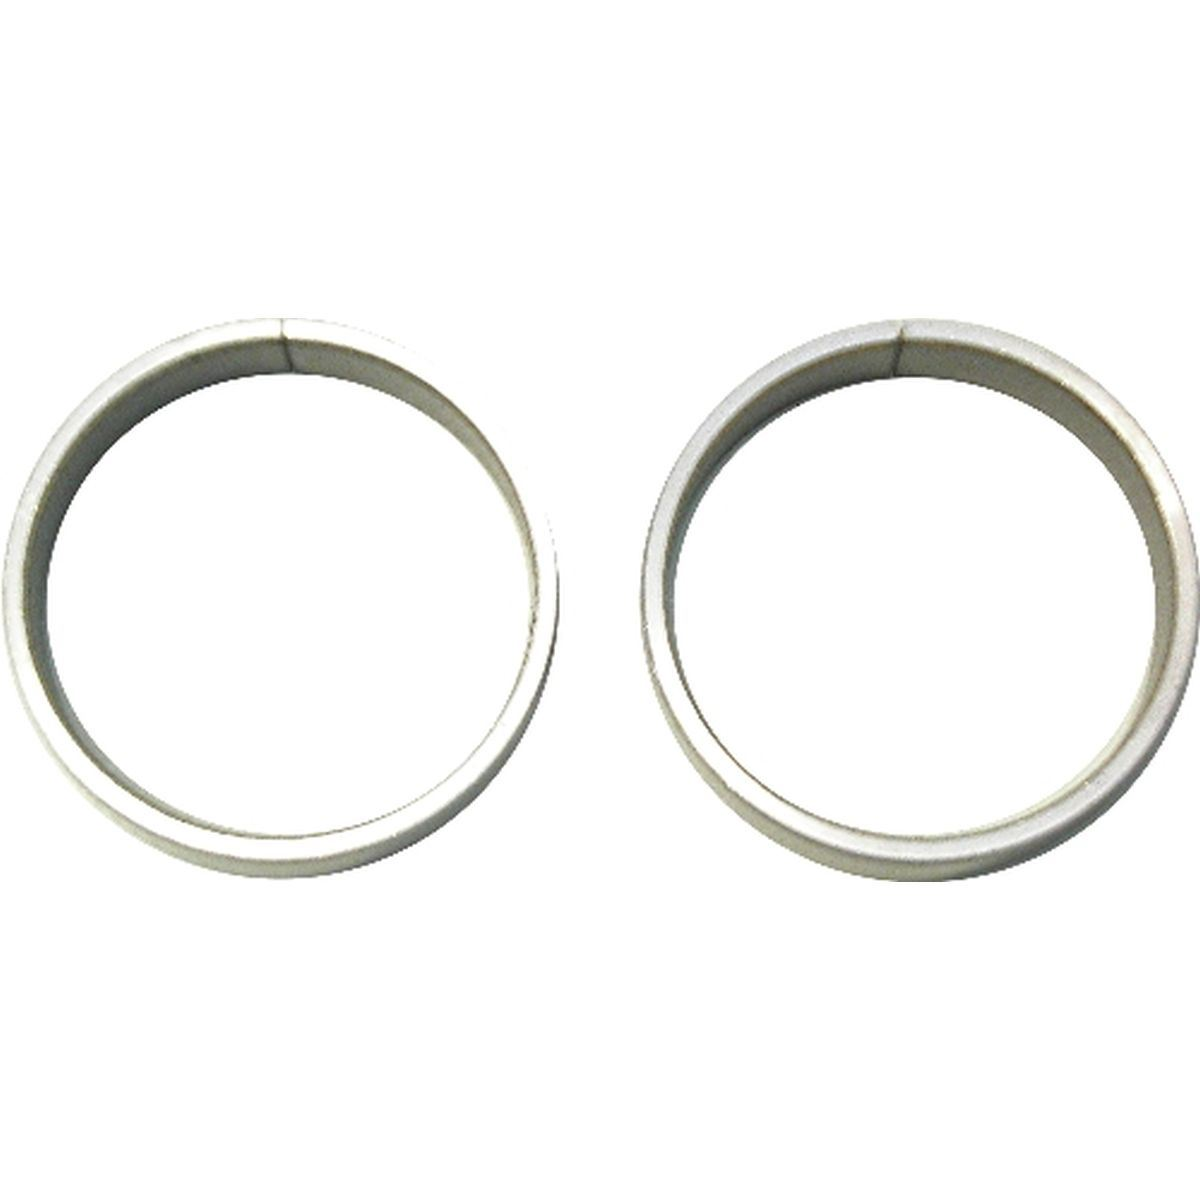 Aw Motorcycle Parts Fork Bushings O D 42mm I D 38mm Width 12mm Thickness 2mm Pair